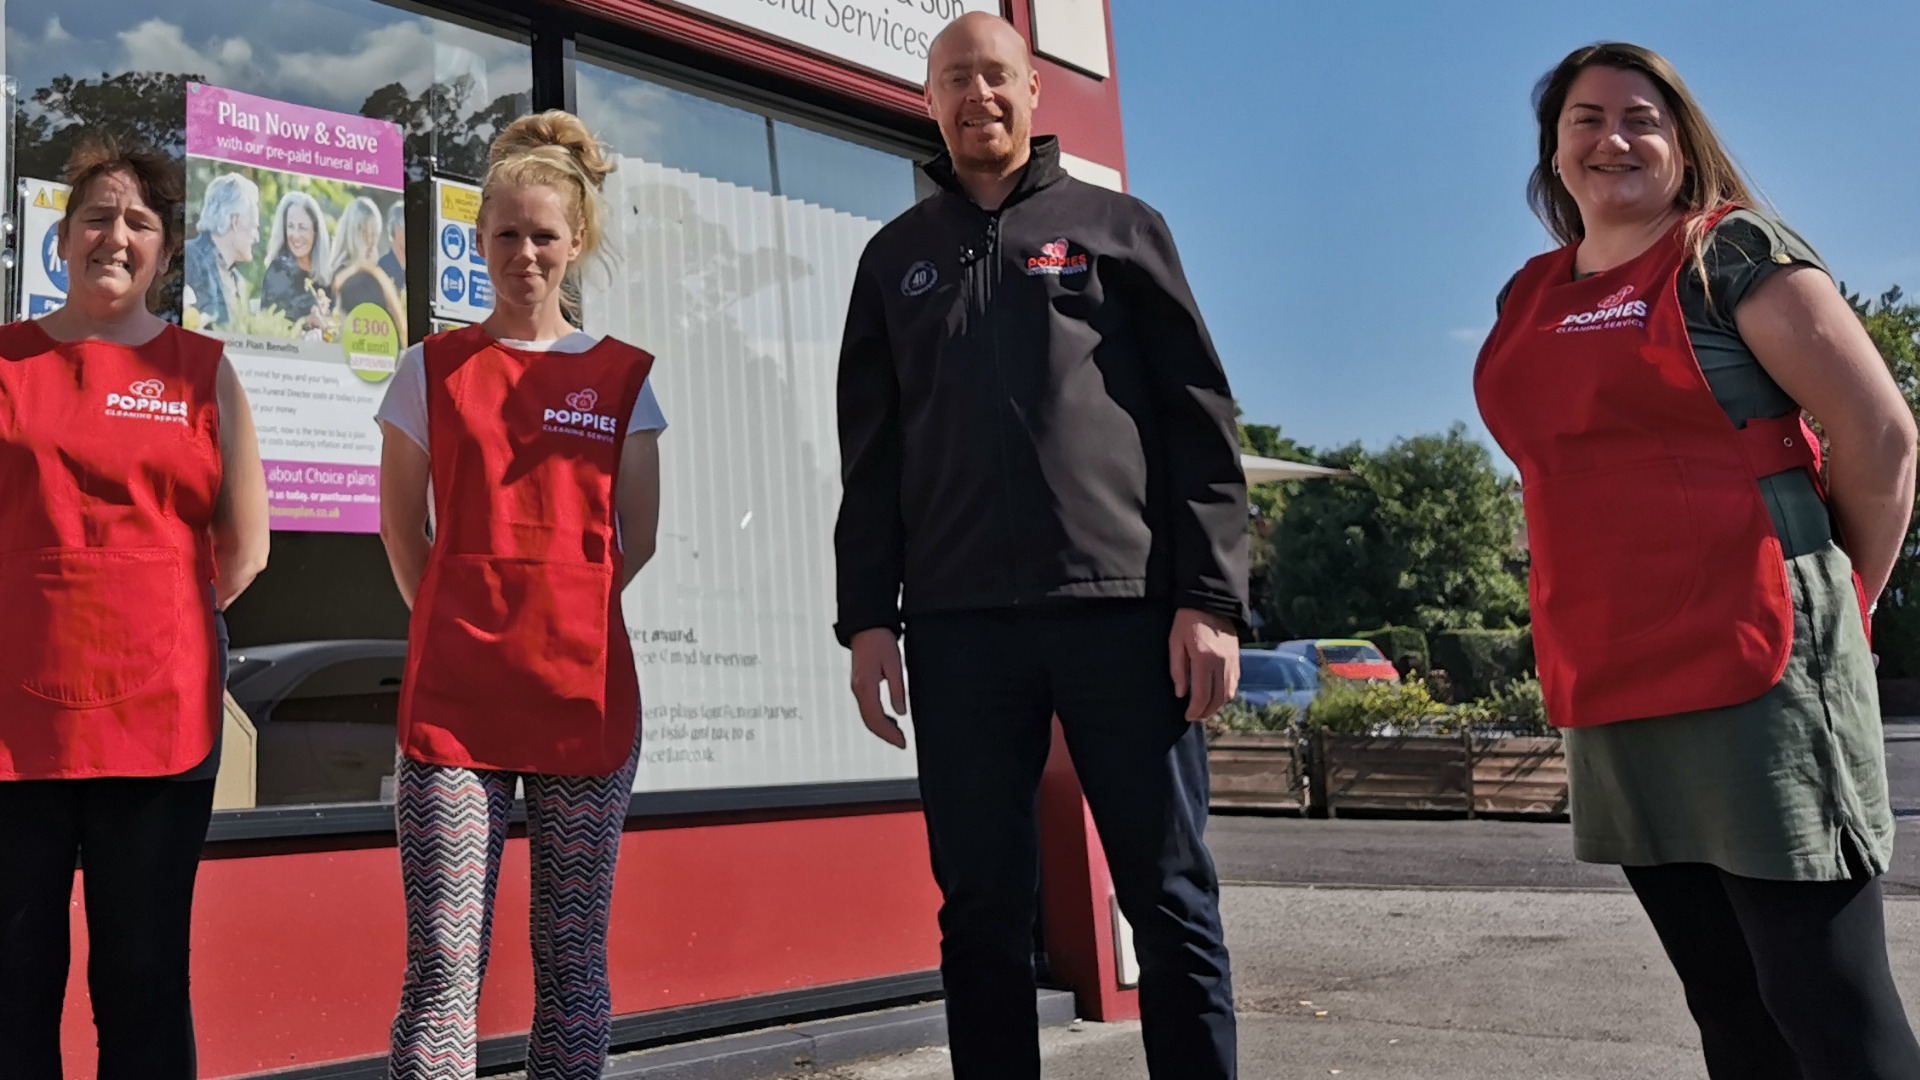 West Yorkshire entrepreneur cleans up with new franchise